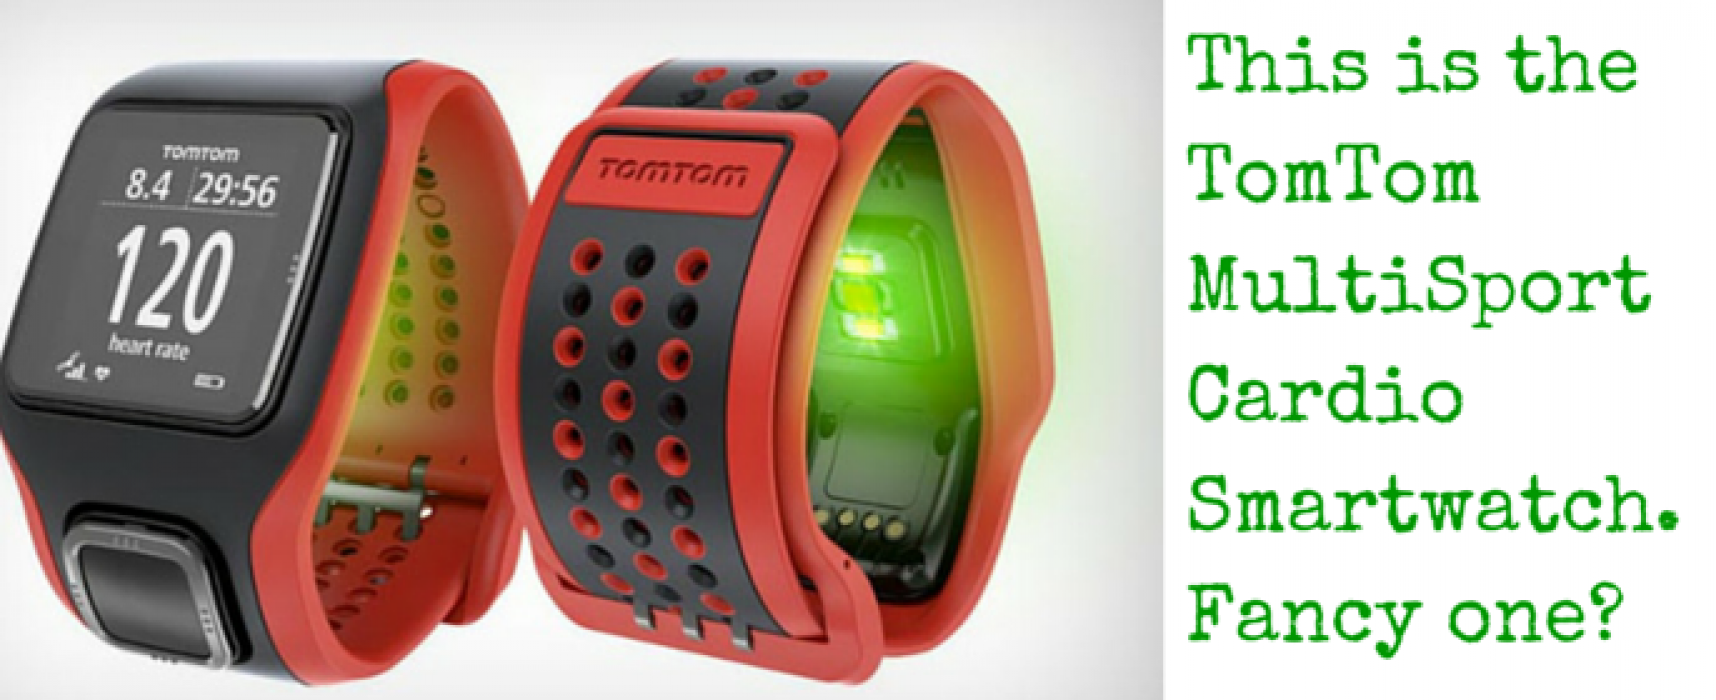 Win A TomTom MultiSport Cardio Smartwatch Worth Over £250